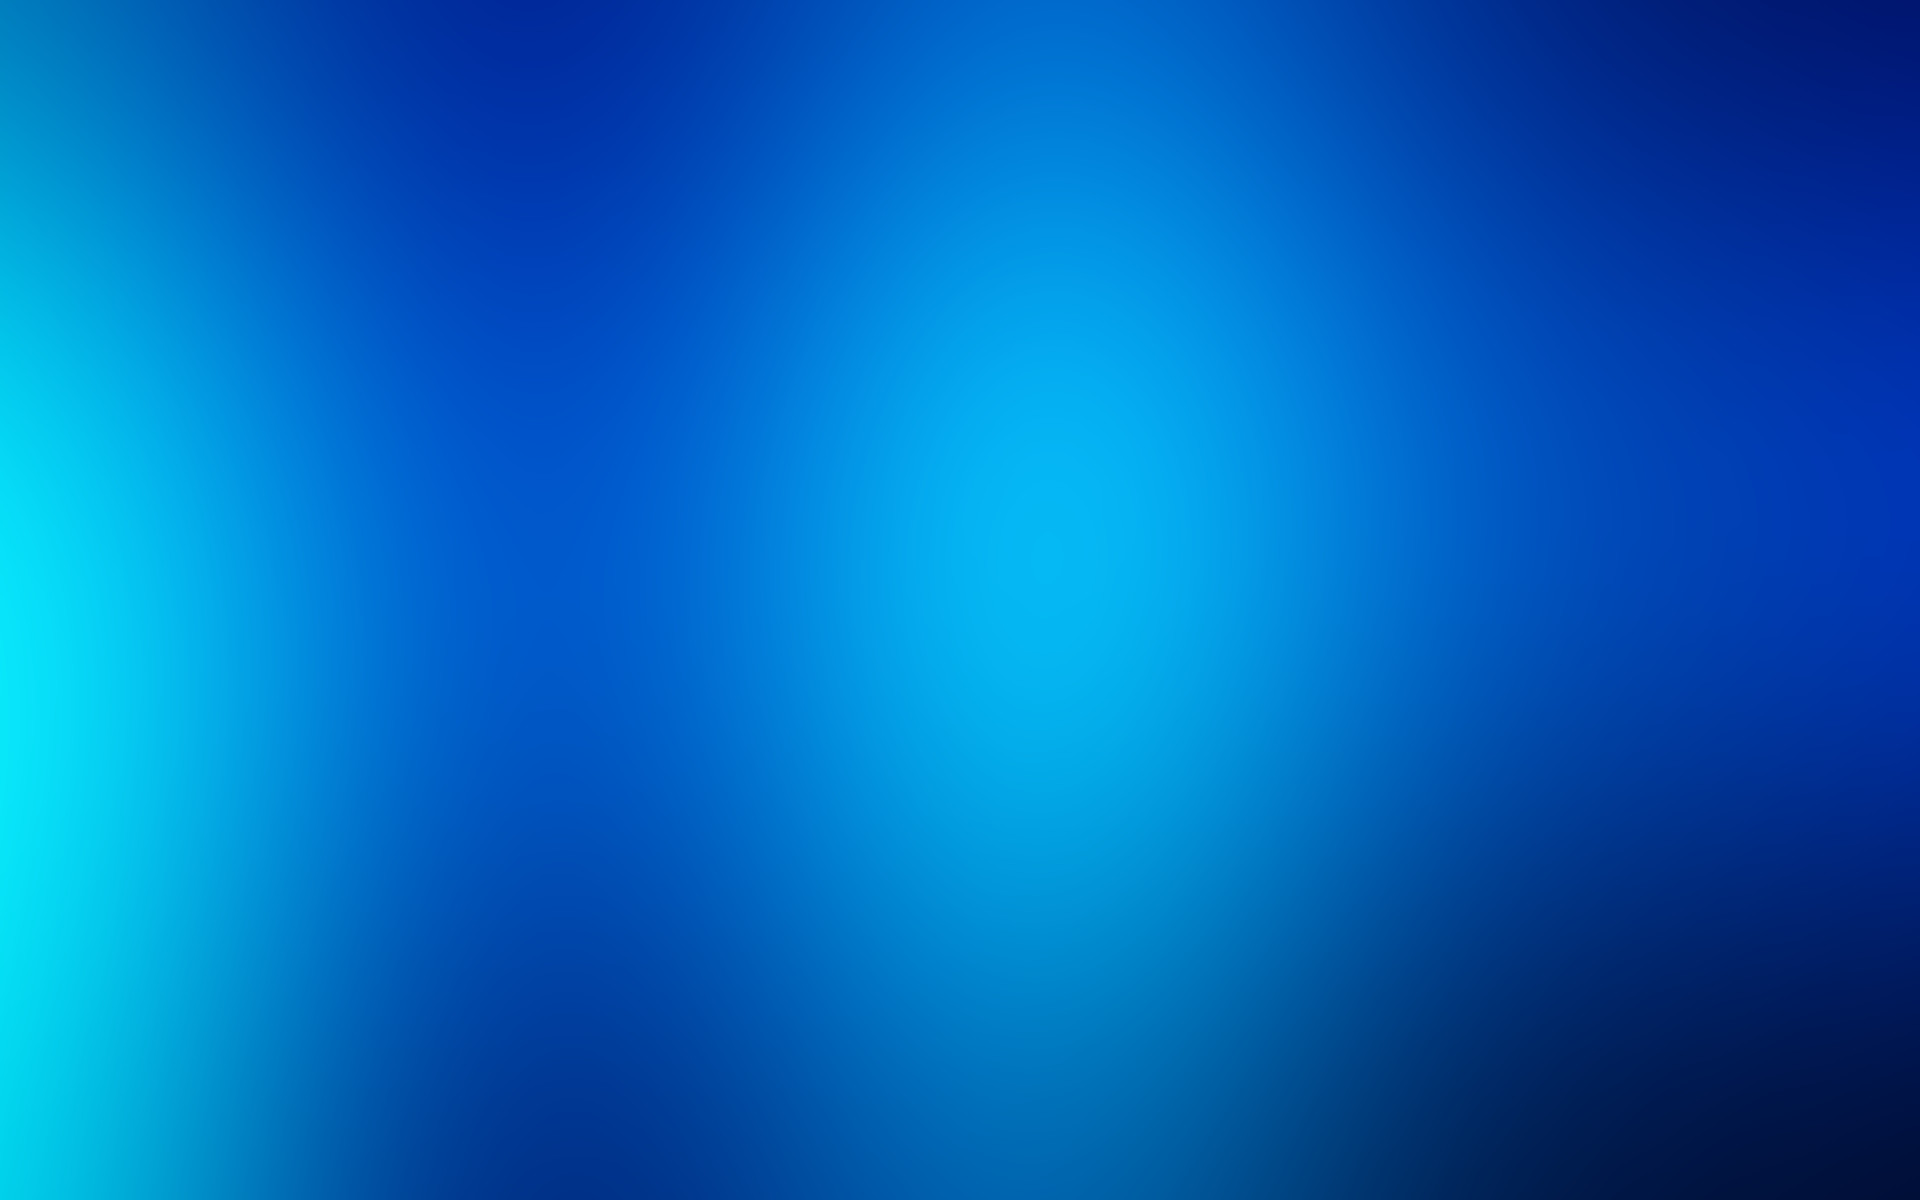 Blue Background Gradient 747173. SHARE. TAGS: Smartphone Tablet Hipster  Gradient Android